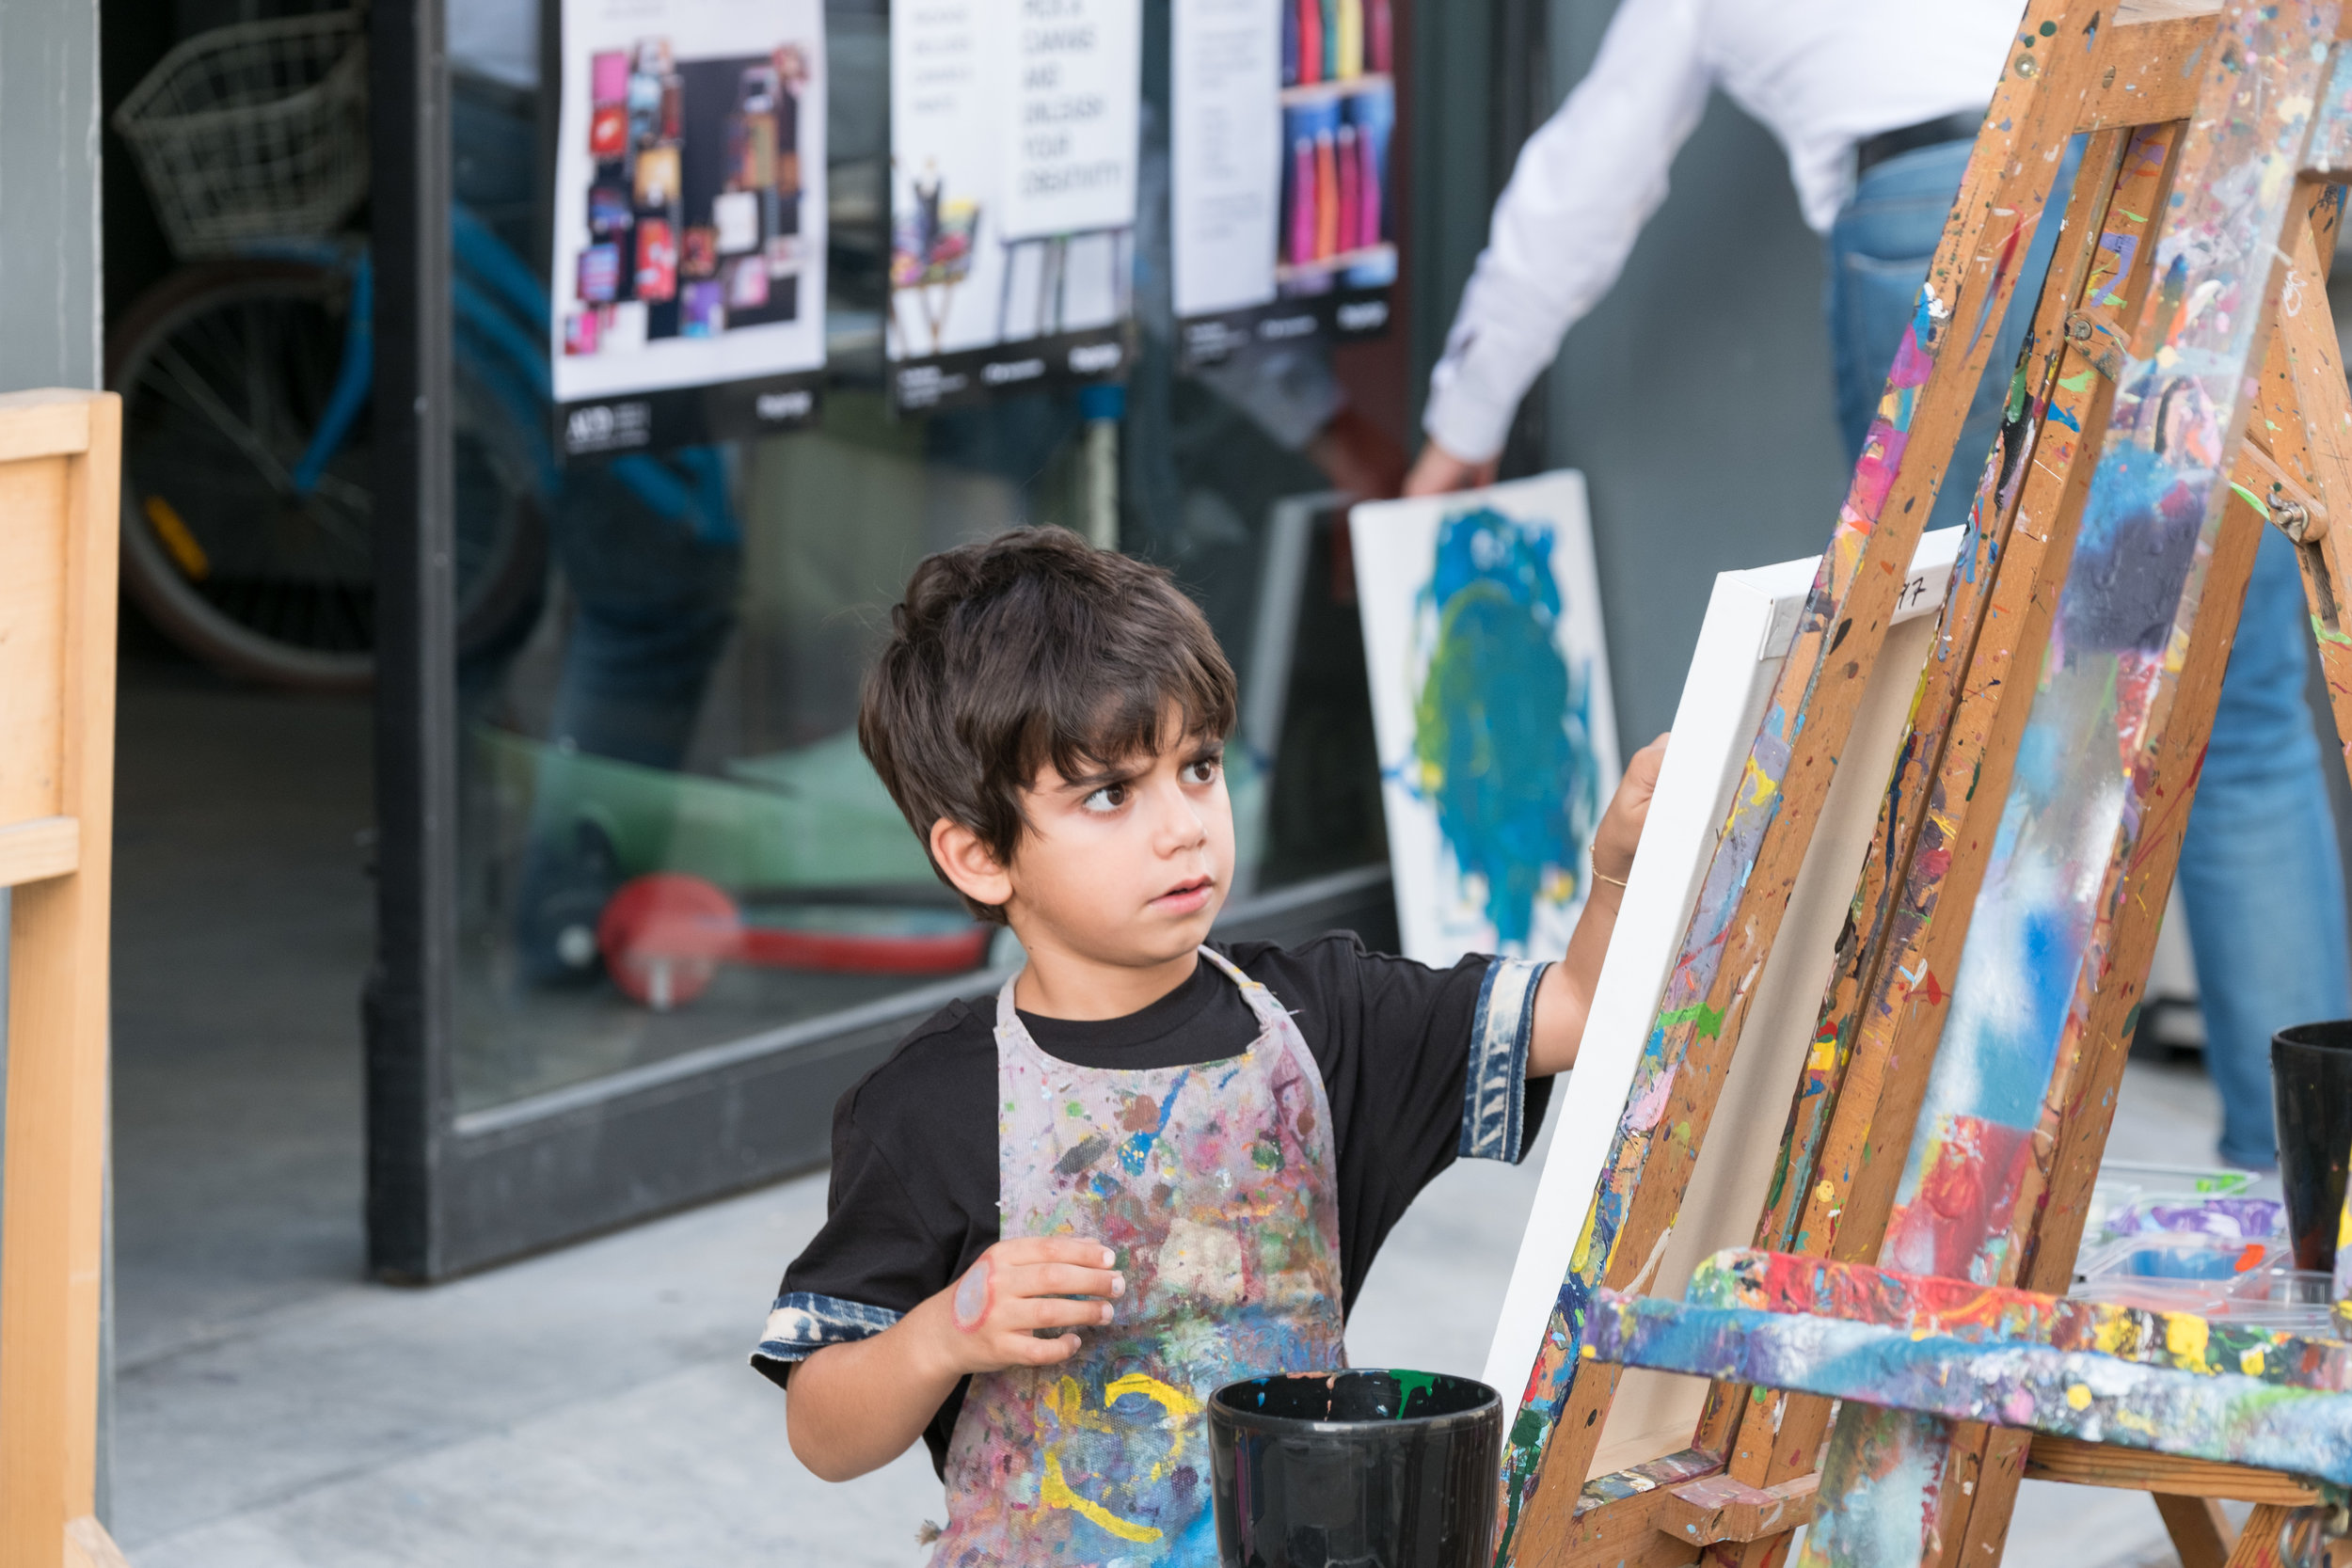 A child partakes in a workshop during Quoz Fest 2017. Image courtesy of Alserkal Avenue